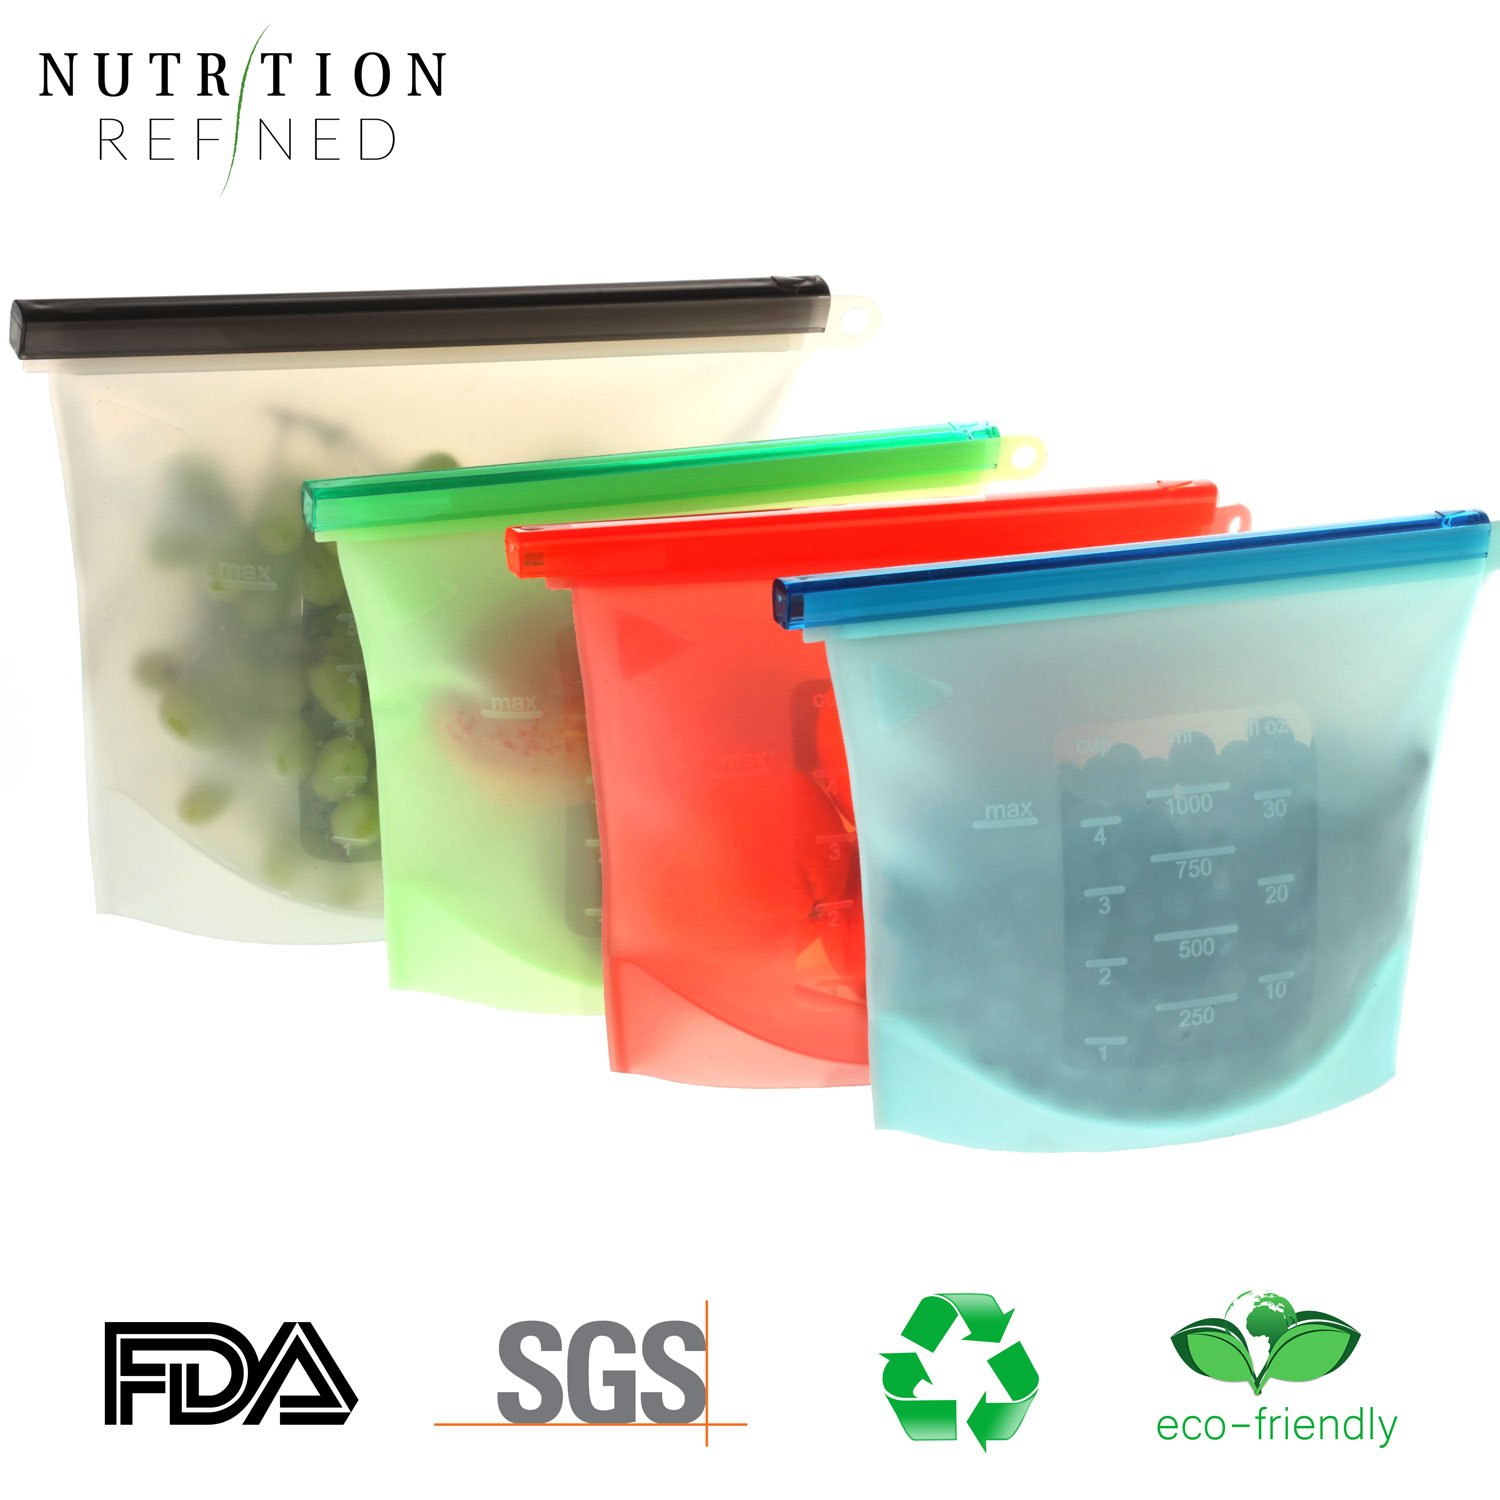 Amazon.com - Reusable Silicone Food Storage Bags - Resealable ... 3b34c3288a740